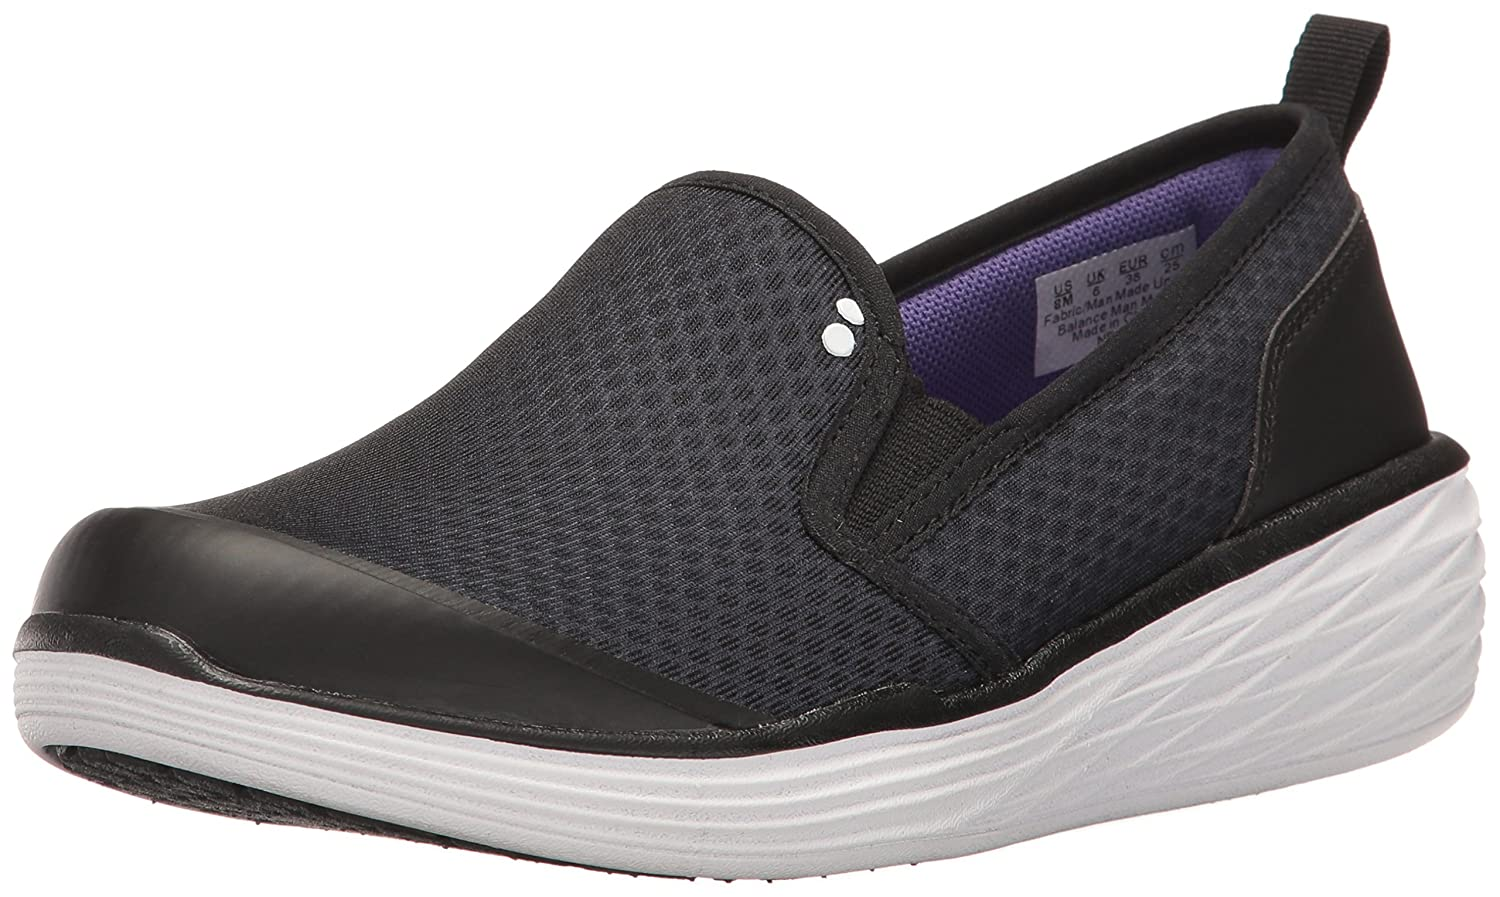 Ryka Women's Neve Fashion Sneaker 7.5 W US|Black/Purple